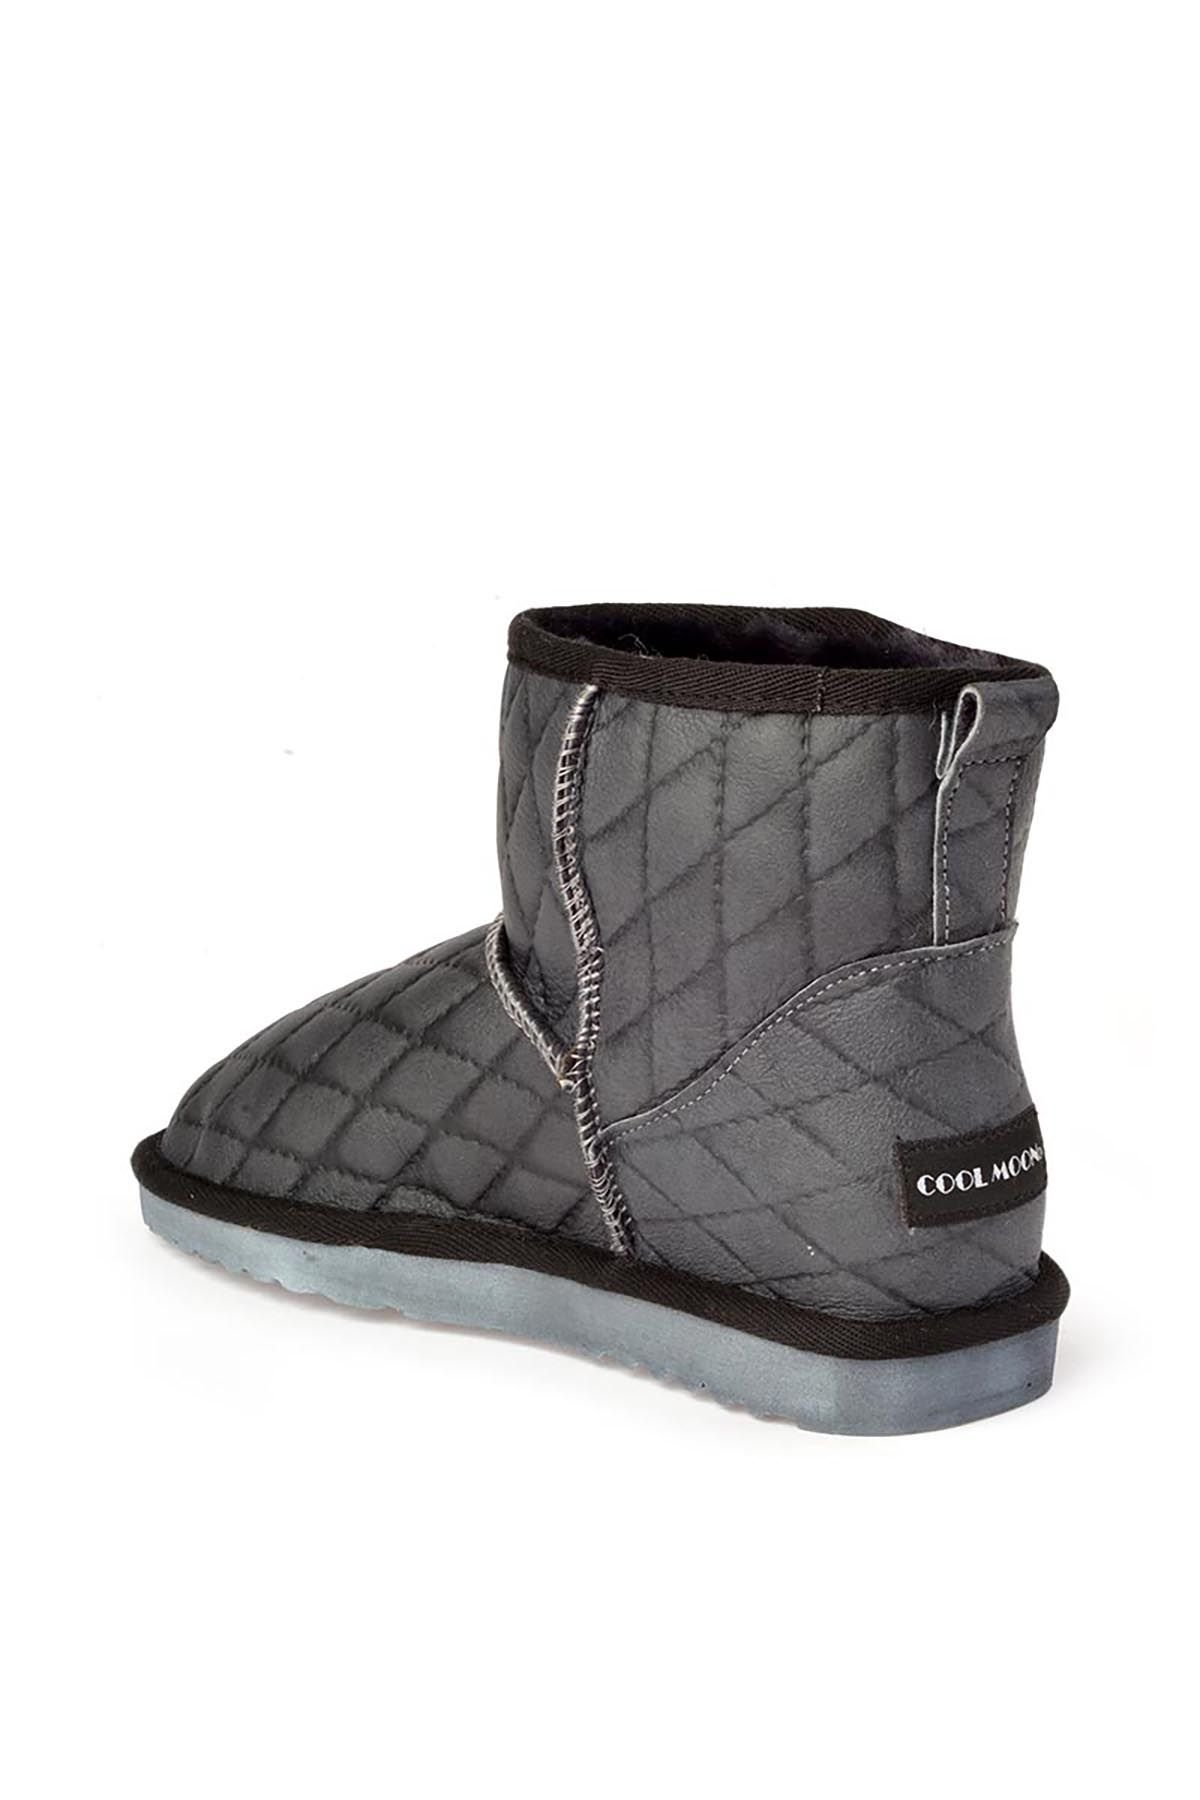 Cool Moon Quilted Women Uggs From Genuine Fur Brown